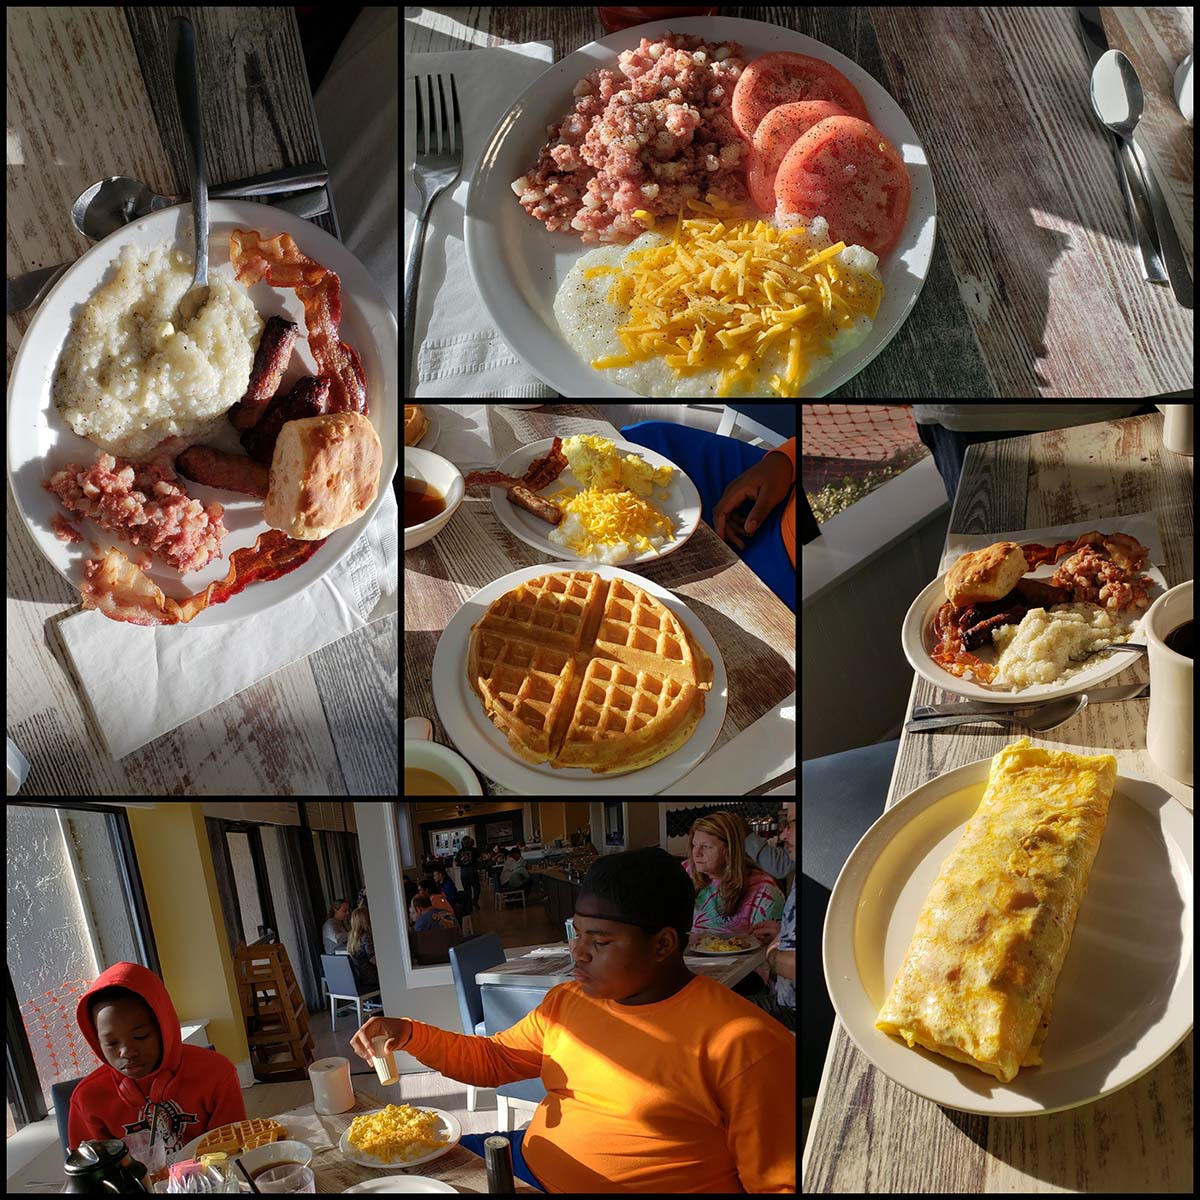 A collage of different breakfast dishes